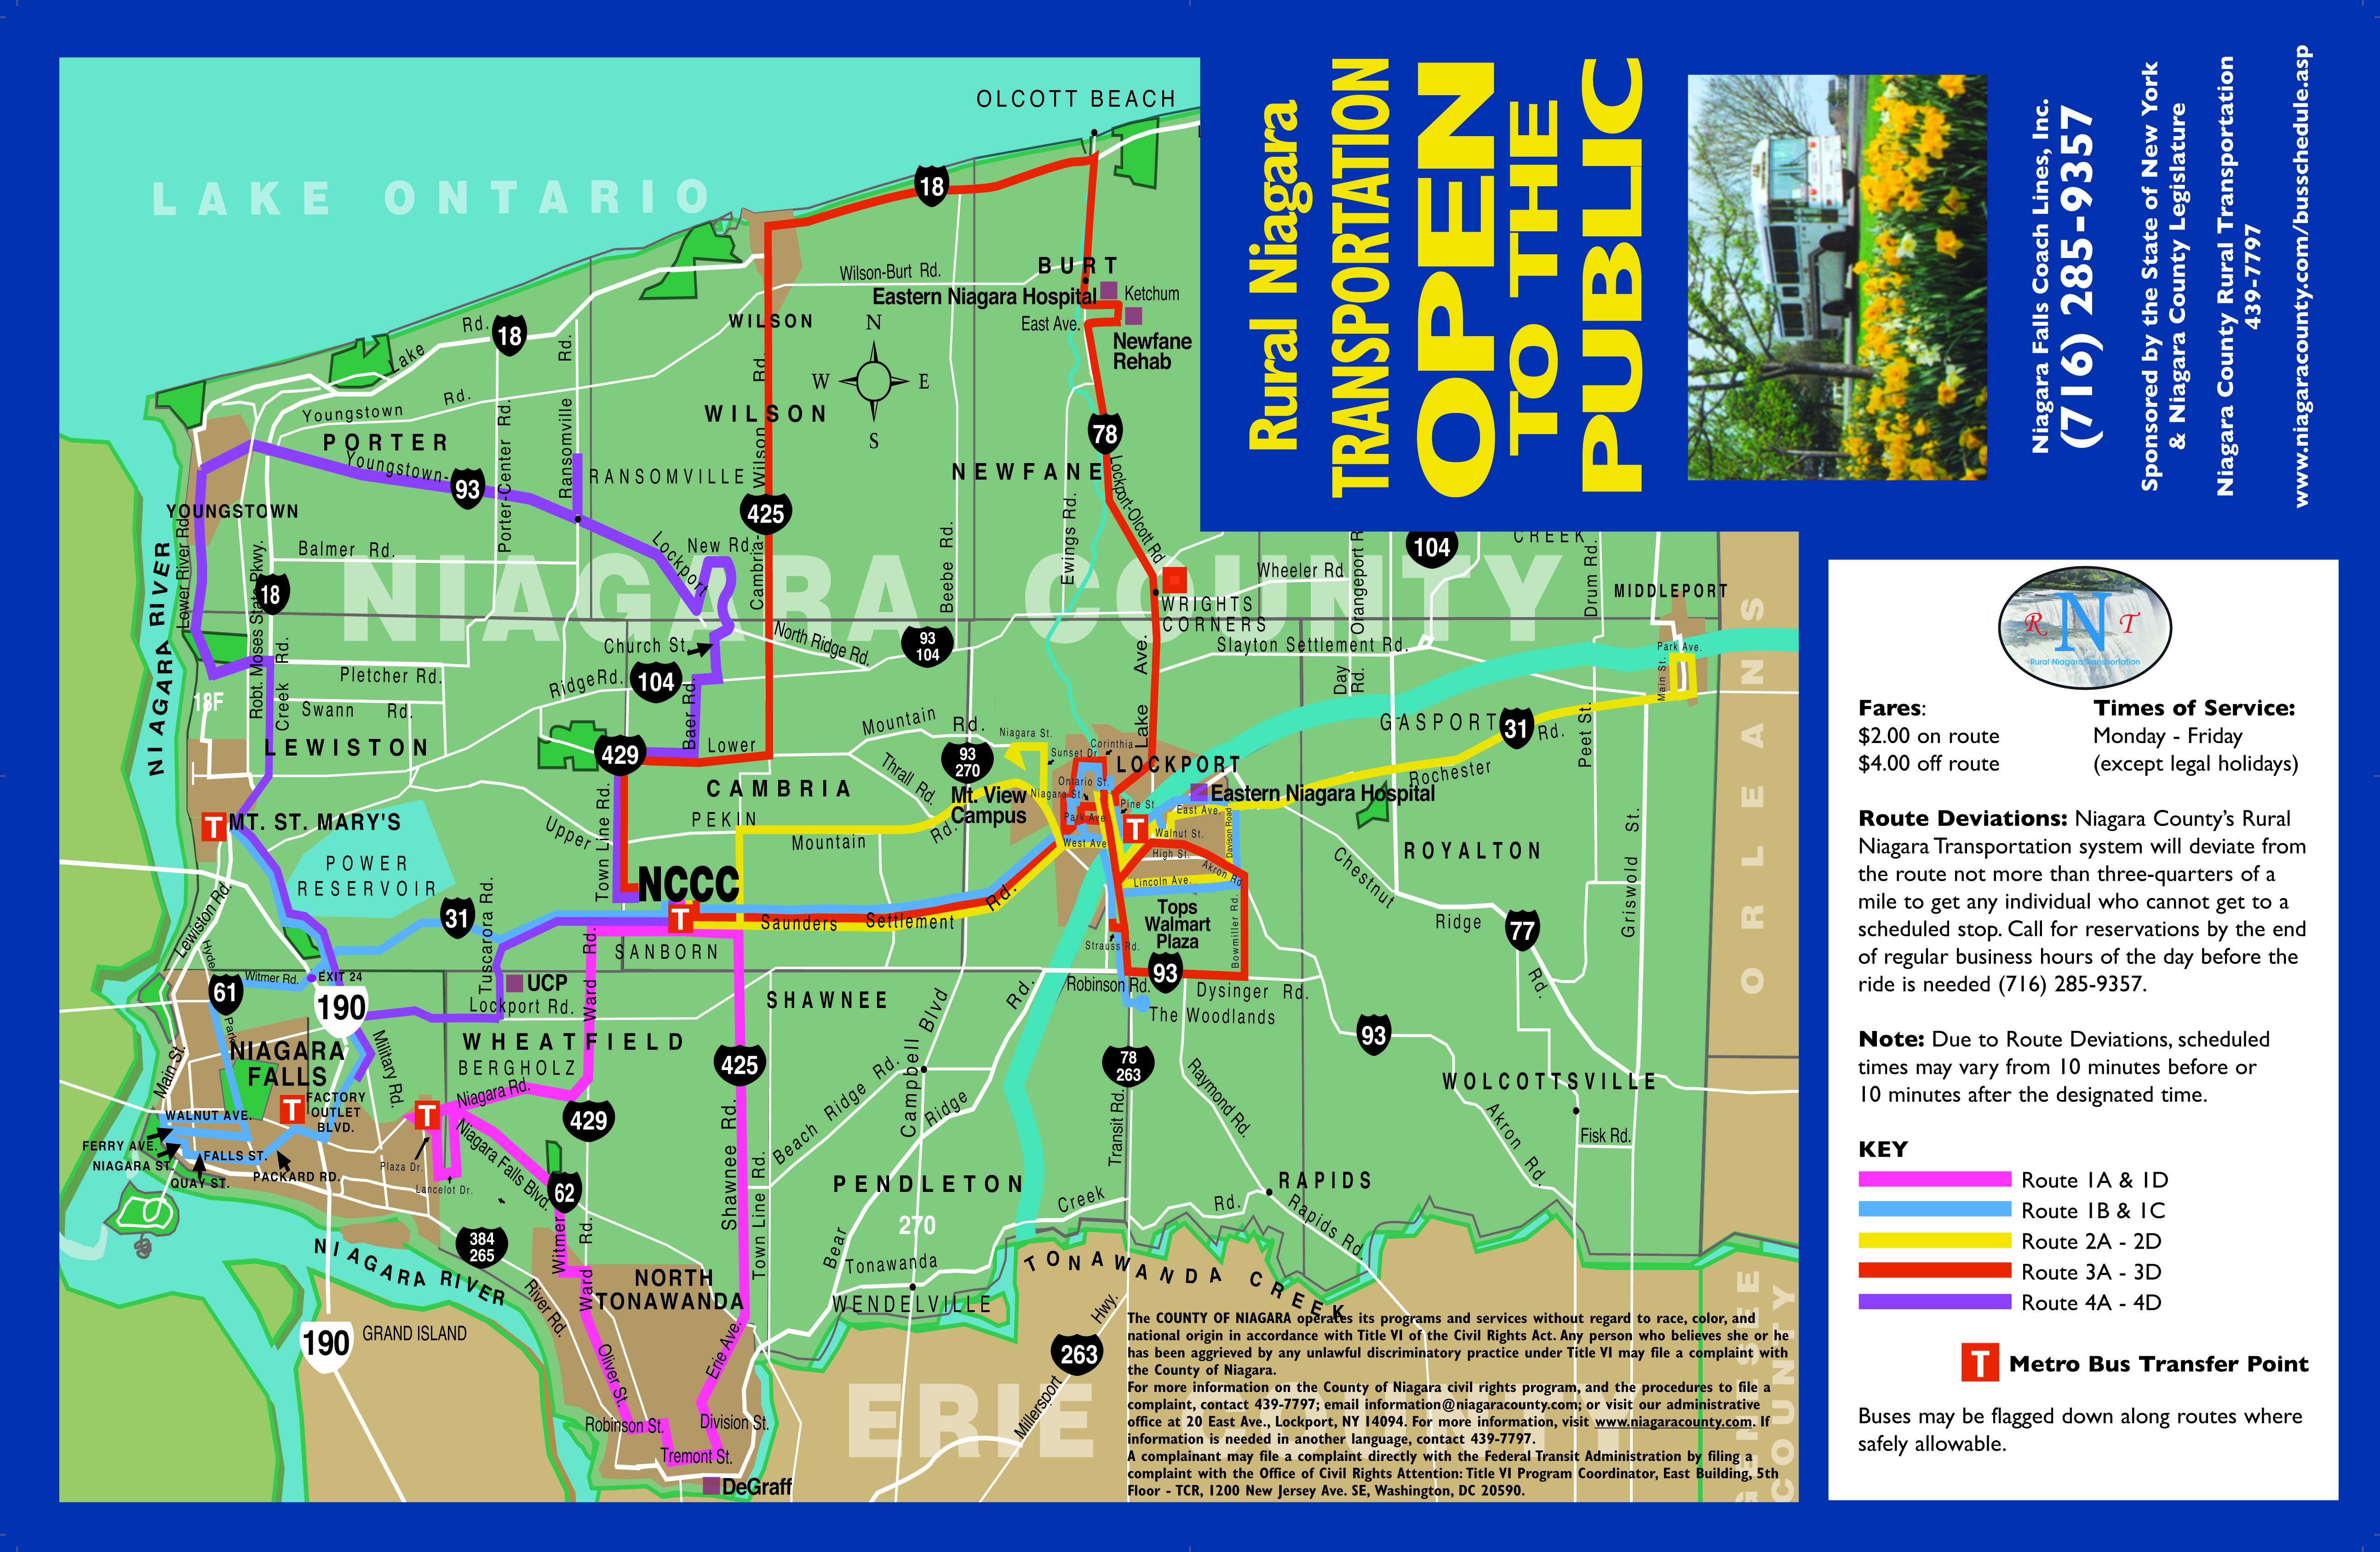 Map Key Route 1 A D Pink Route 1 B C Blue Route 2 Yellow Route 3 Red Route 4 Purple